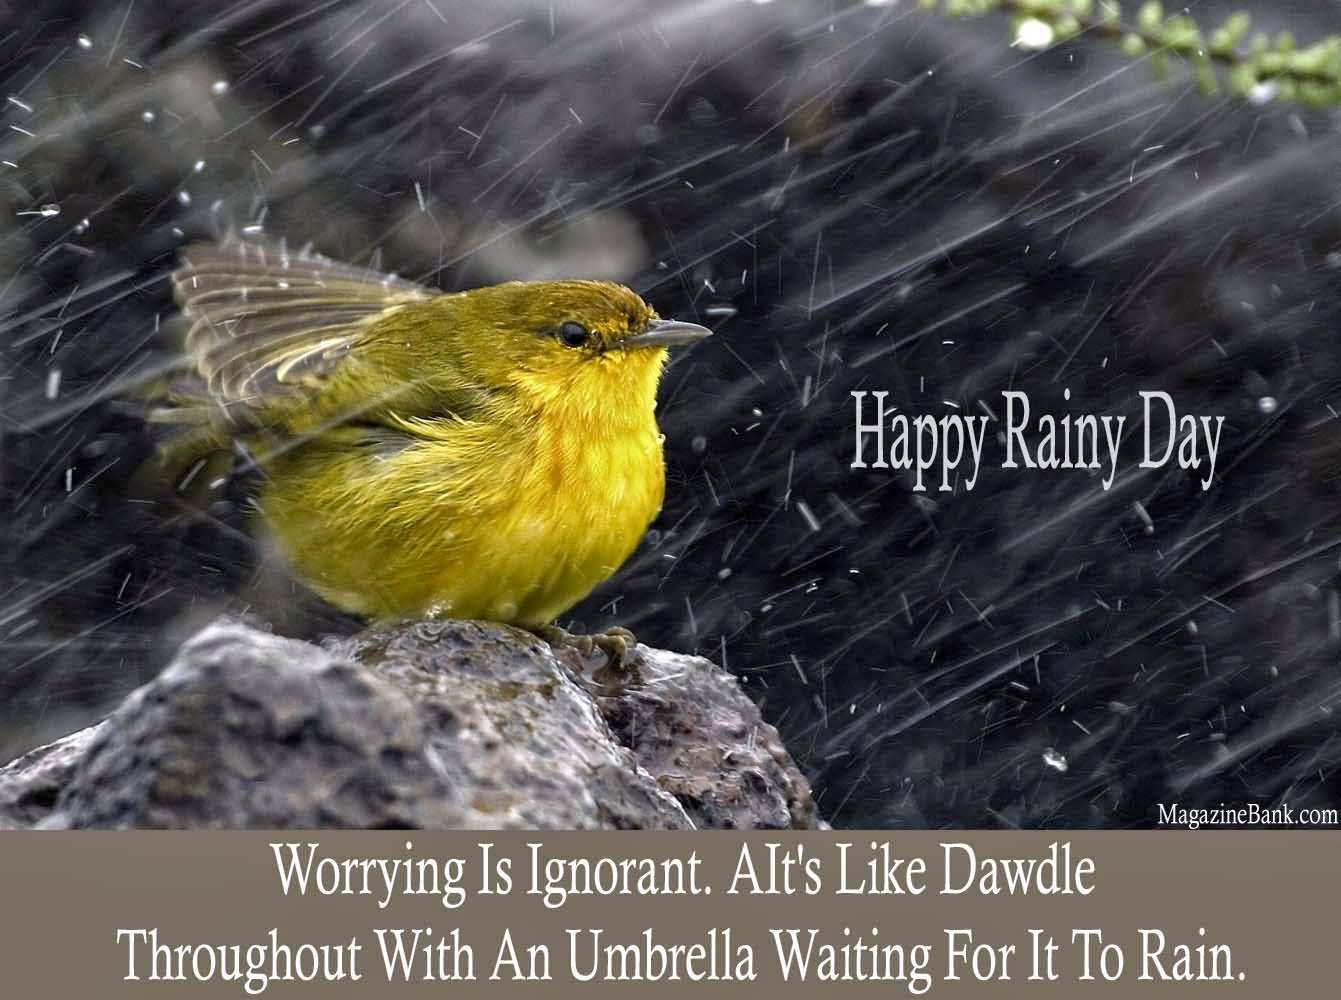 Happy Rainy Day Worrying Is Ignorant. A It's like Dawdle Throughout With An Umbrella Waiting